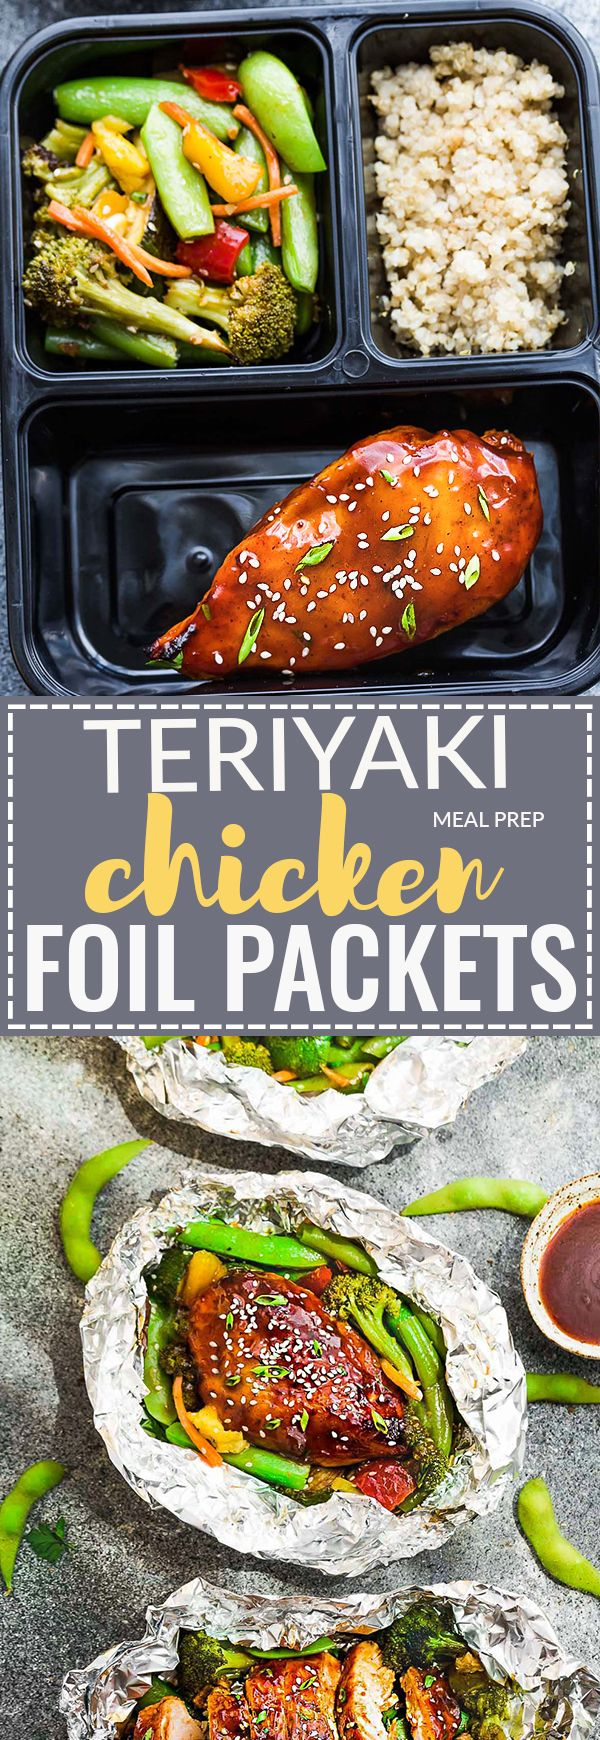 This recipe for Teriyaki Chicken Foil Packets with Vegetables (Meal Prep) is the perfect easy campfire or weekly dinner for summer. A complete meal with practically no clean up and full of your favorite sweet and savory Asian-inspired meal with tender chicken, edamame, broccoli, pineapple and red bell pepper. Make a batch for Sunday meal prep and pack it up for your lunchbox or lunch bowls. Foil packets are great for camping or busy weeknights.